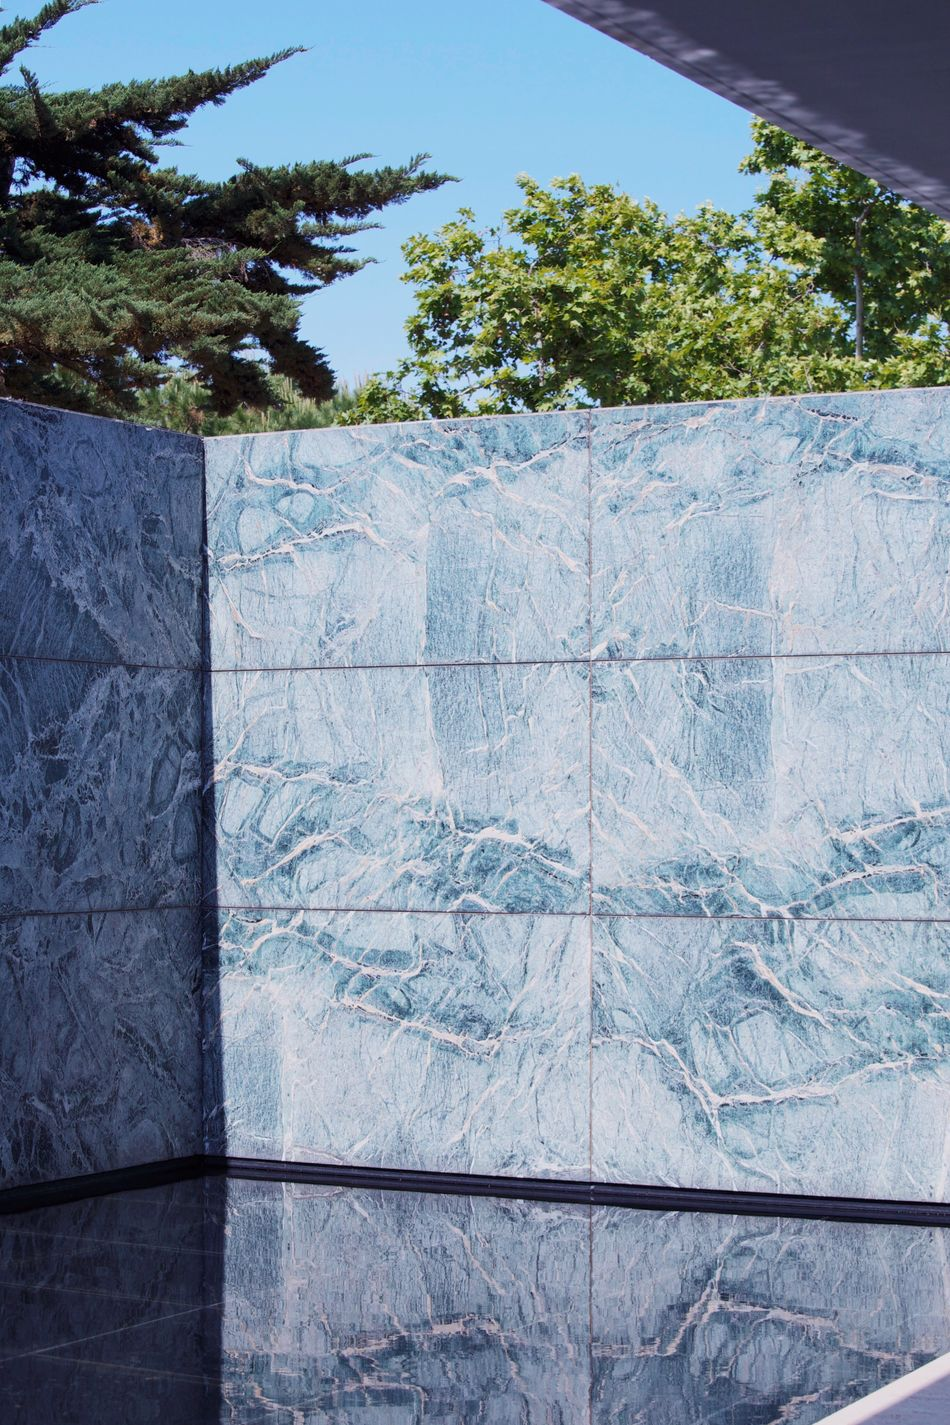 Adapted To The City Barcelona Pavilion Mies Van Der Rohe No People Day Tree Outdoors Nature Sky Architecture Pavilion German Pavilion Marble Stone Wall Beauty Reflection Water Low Angle View Pattern Marble Wall Open Edit Art Barcelona Barcelona, Spain